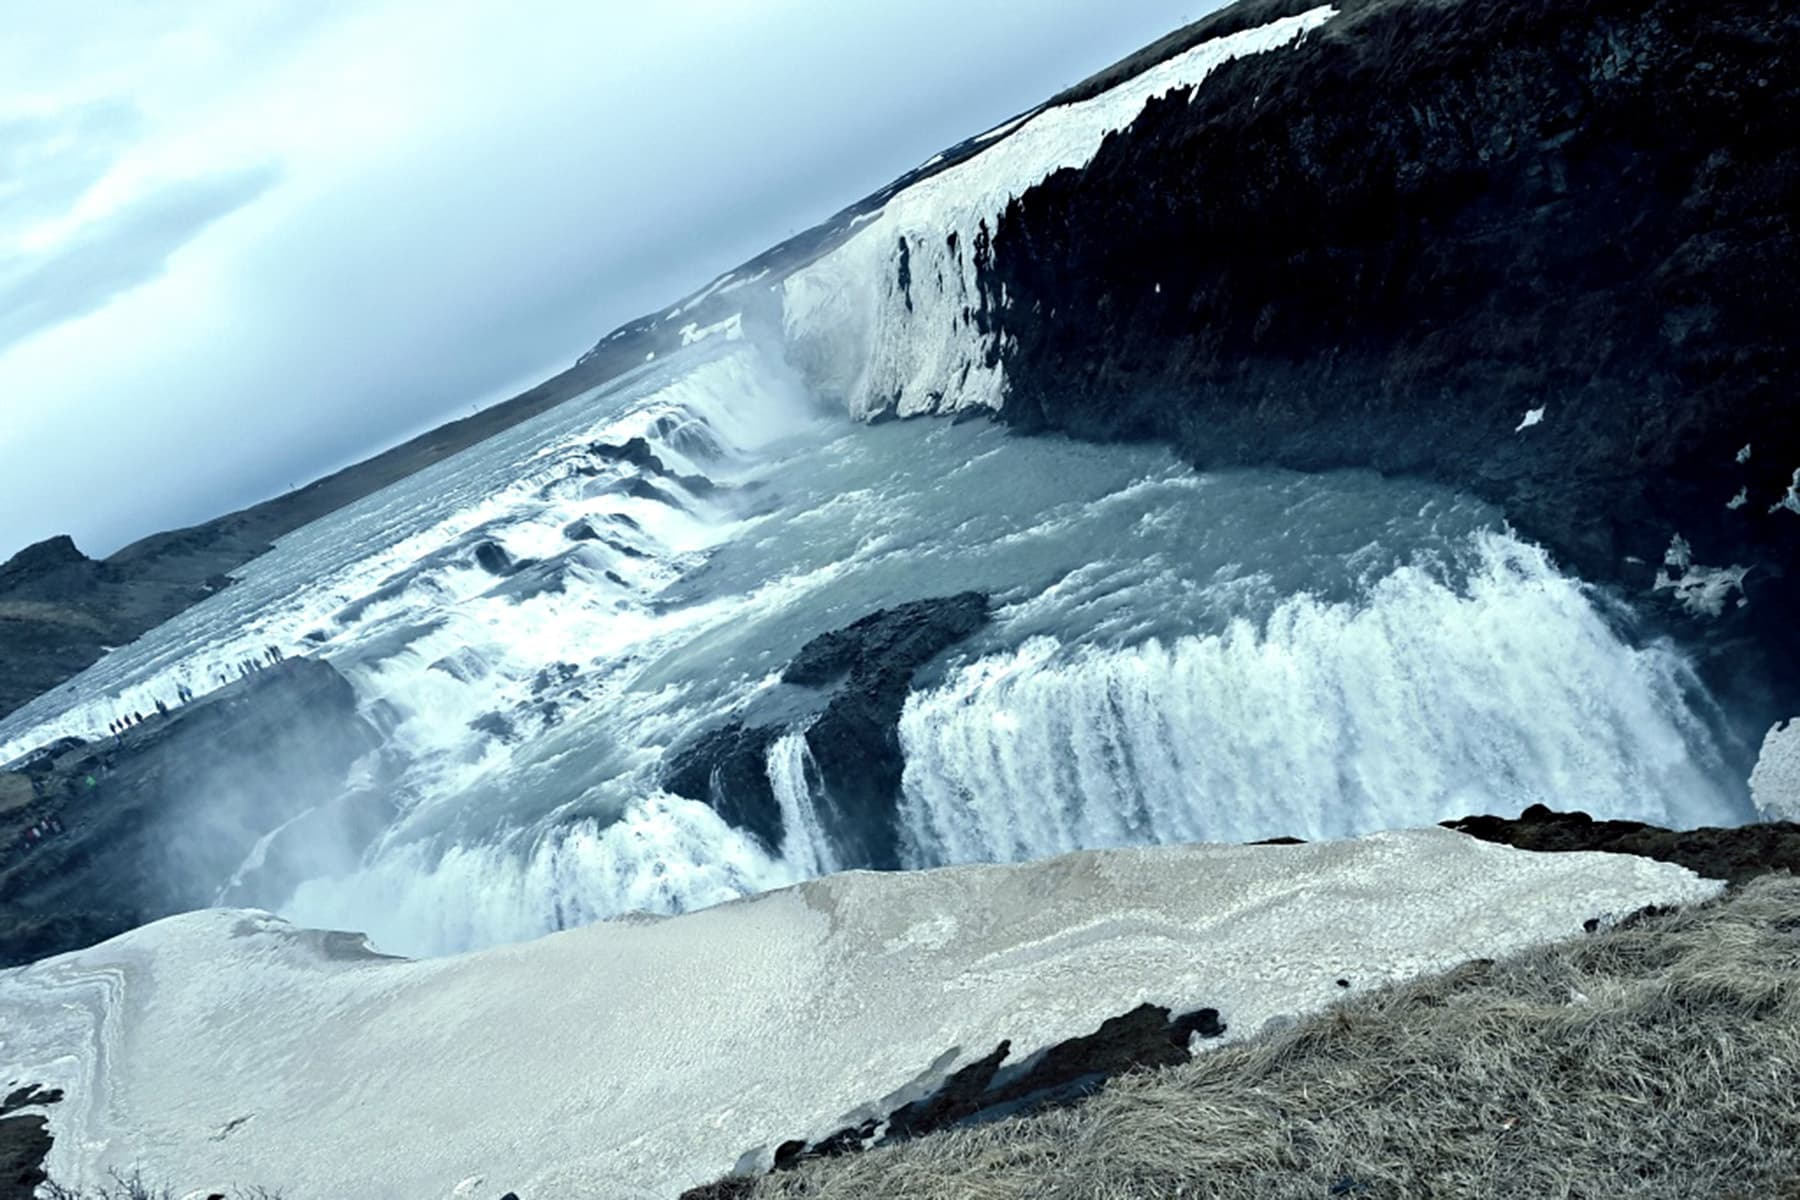 Gulfoss waterfall, part of Iceland's Golden Circle.